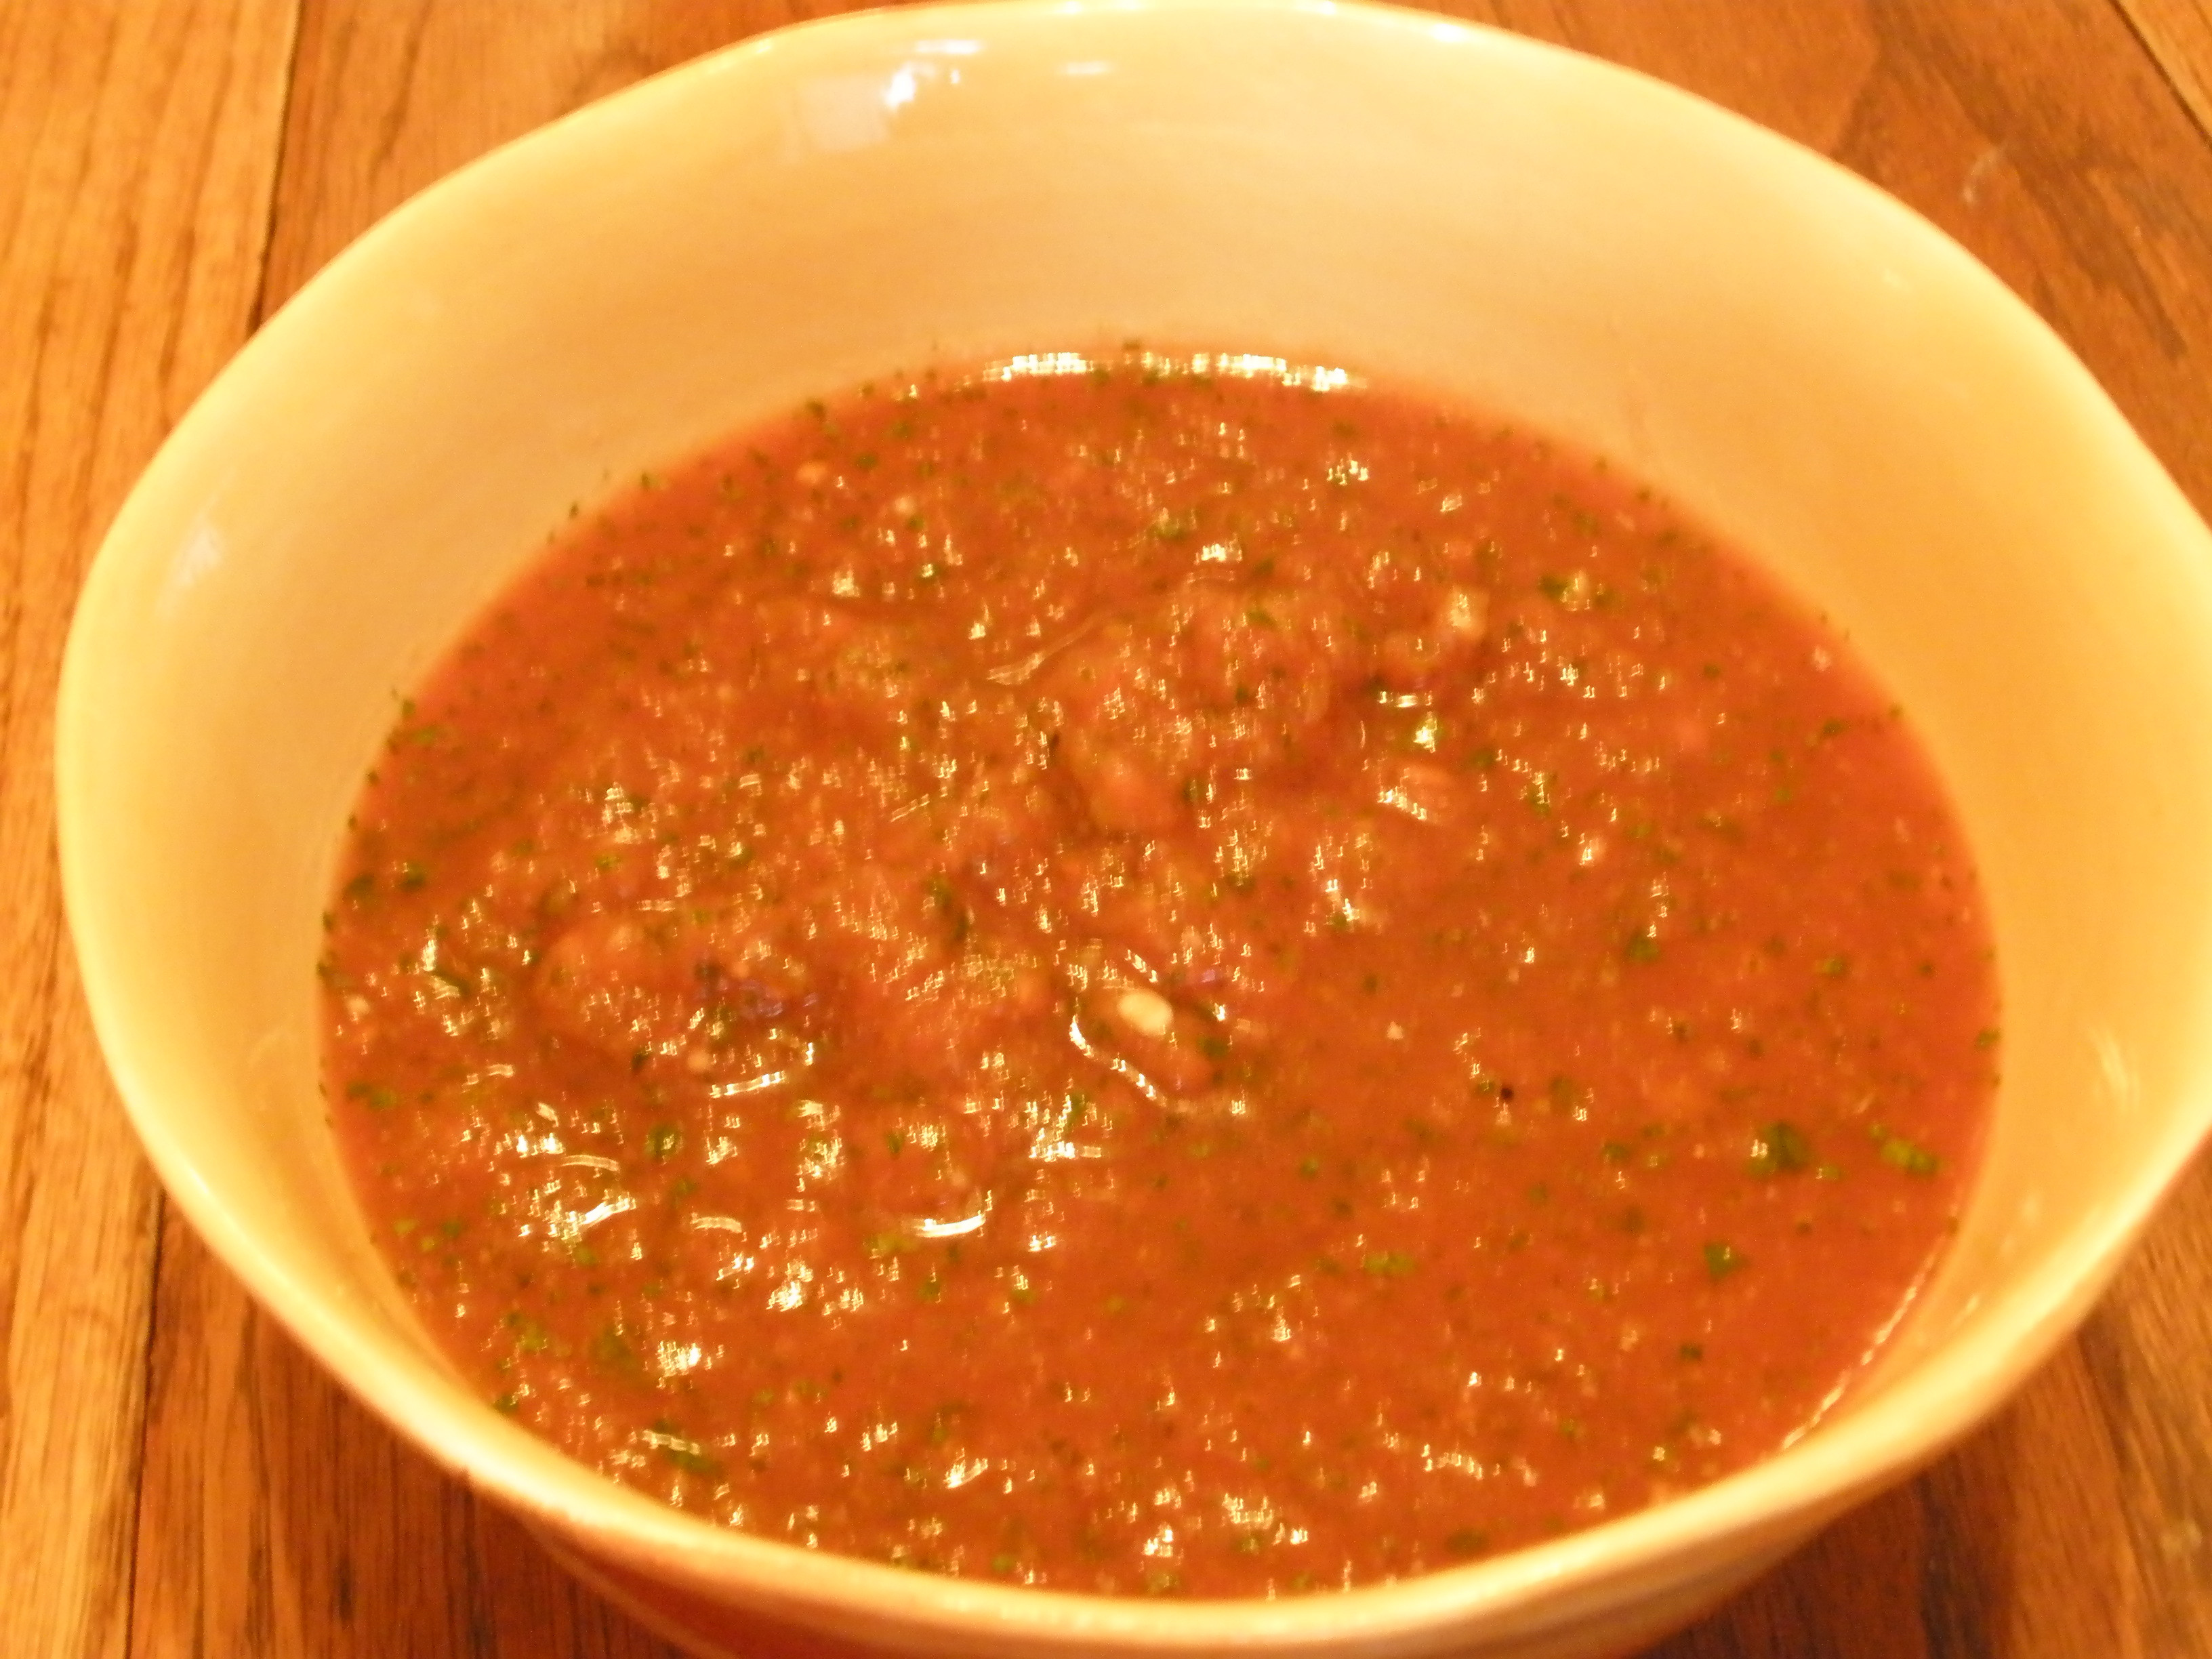 Mexican Restaurant Salsa Recipe  Mexican Restaurant Style Salsa